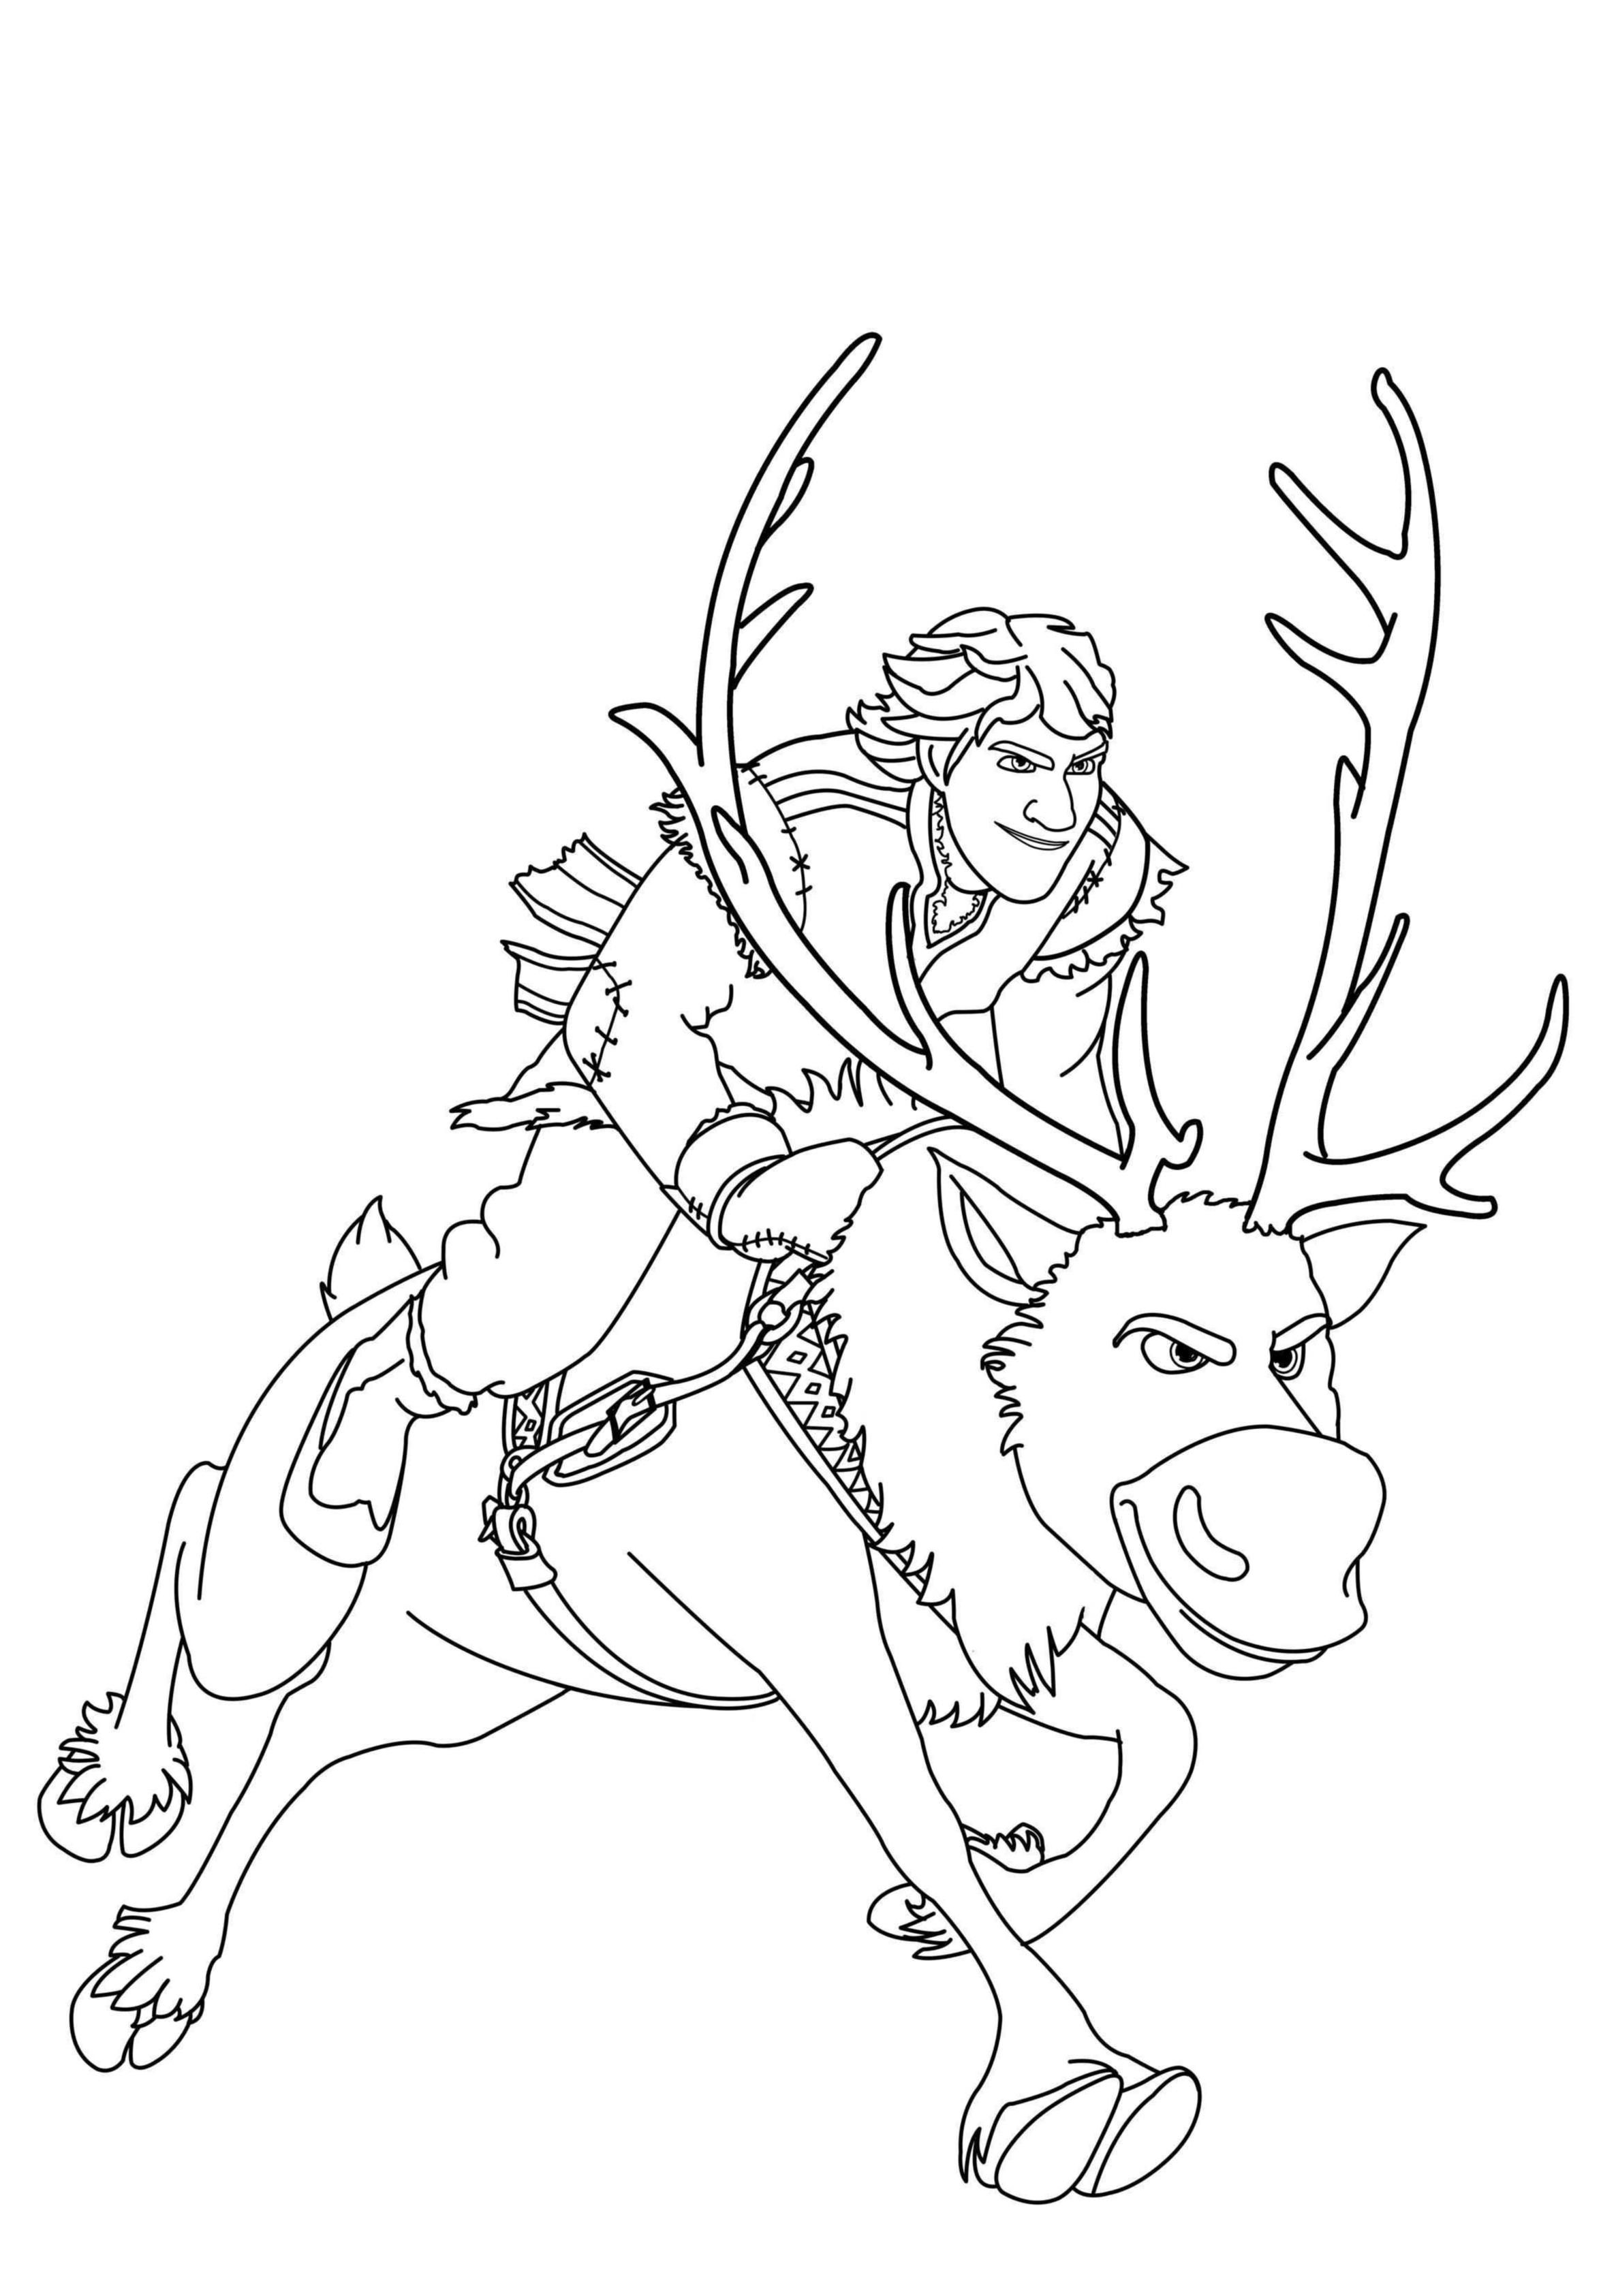 Coloring Frozen Kristoff Sven Jpg 2372 3371 Kids Coloring Pages